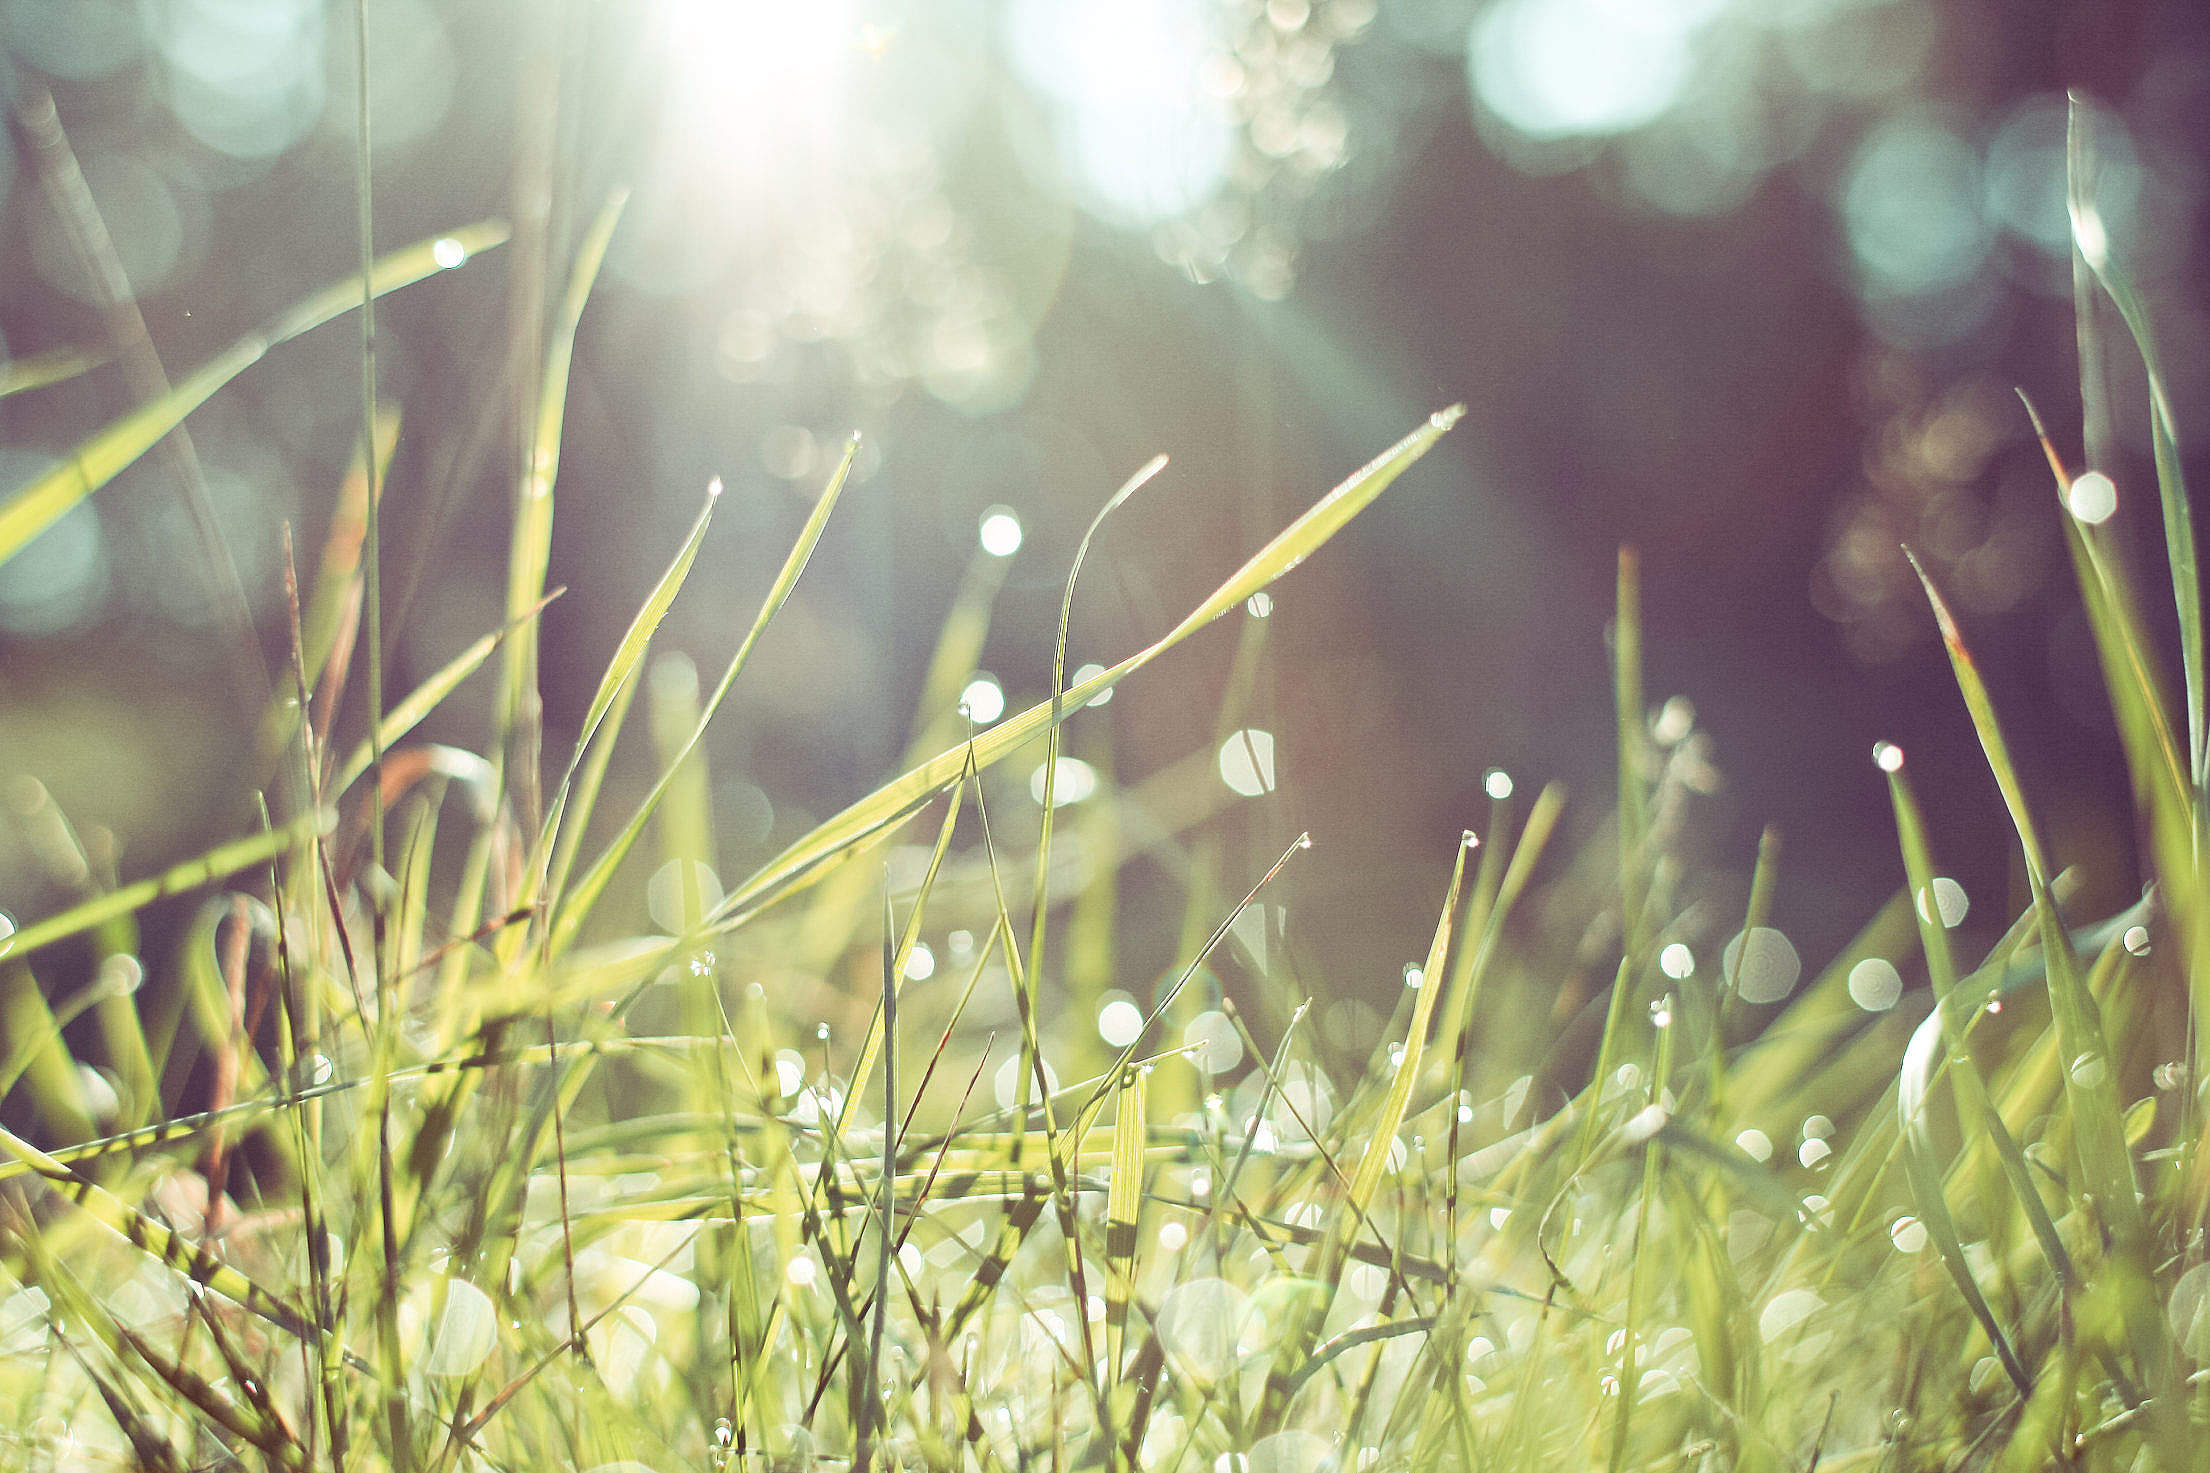 Morning Grass in Forest Free Stock Photo